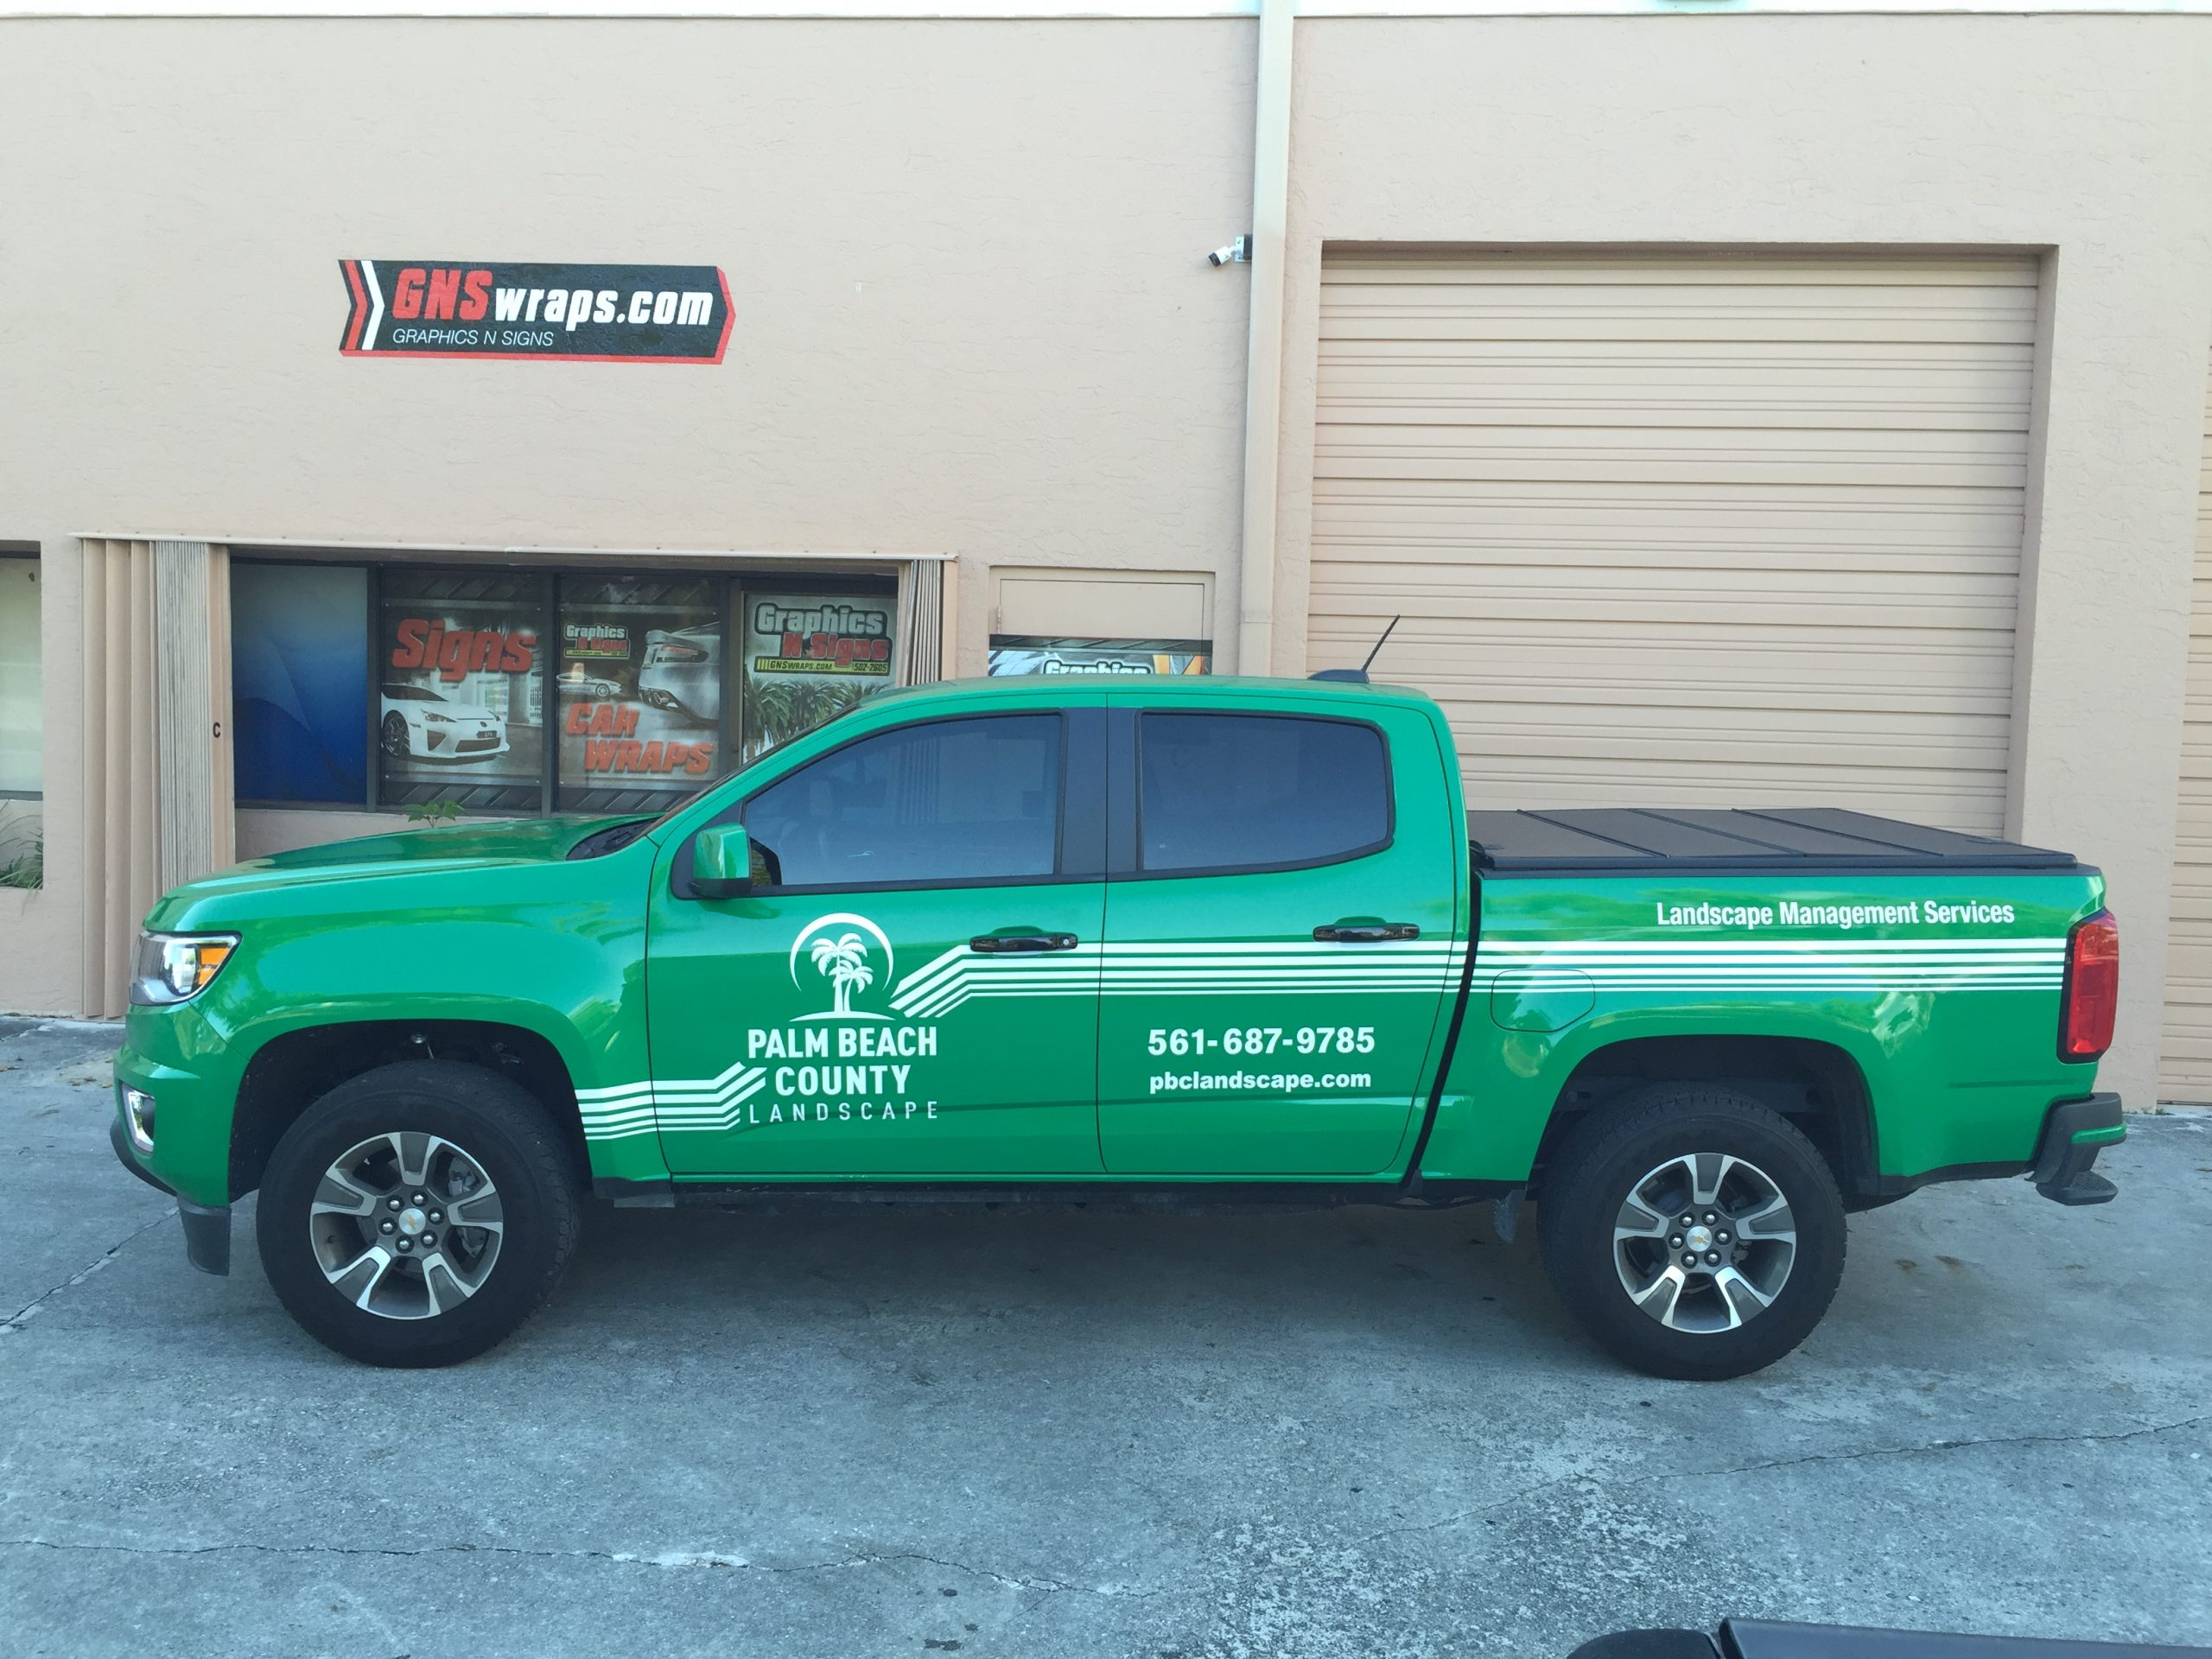 GNS WRAPS CAN WRAP YOUR TRUCK!